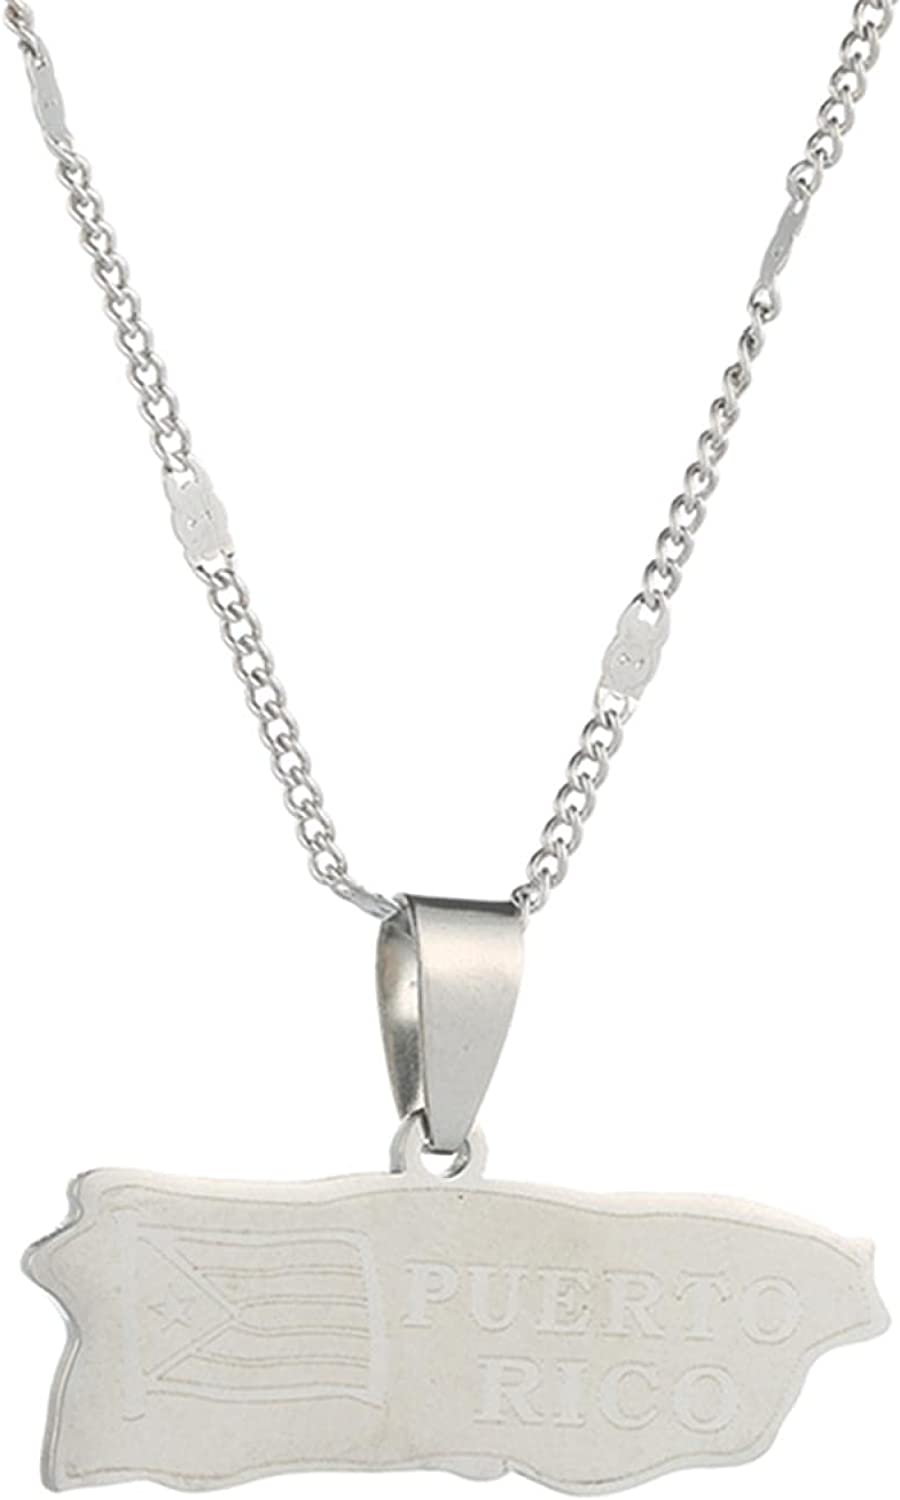 Stainless Steel Puerto Rico Pendant Ricans Max Ranking TOP19 45% OFF Map Necklaces